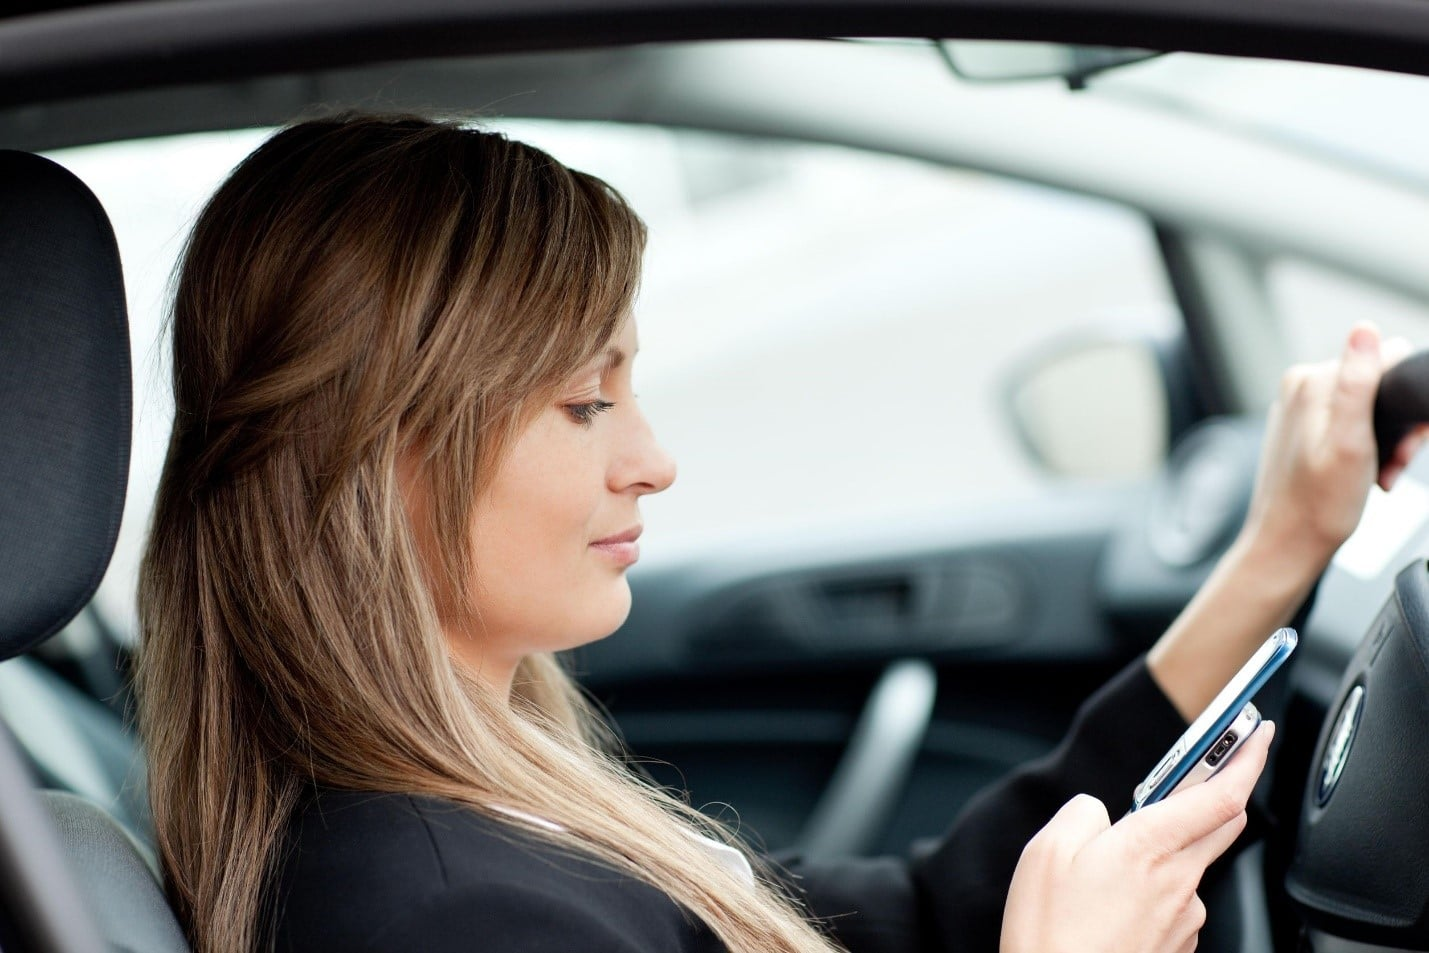 Survey Reports Distracted Drivers Worse Threat than Drunk Drivers